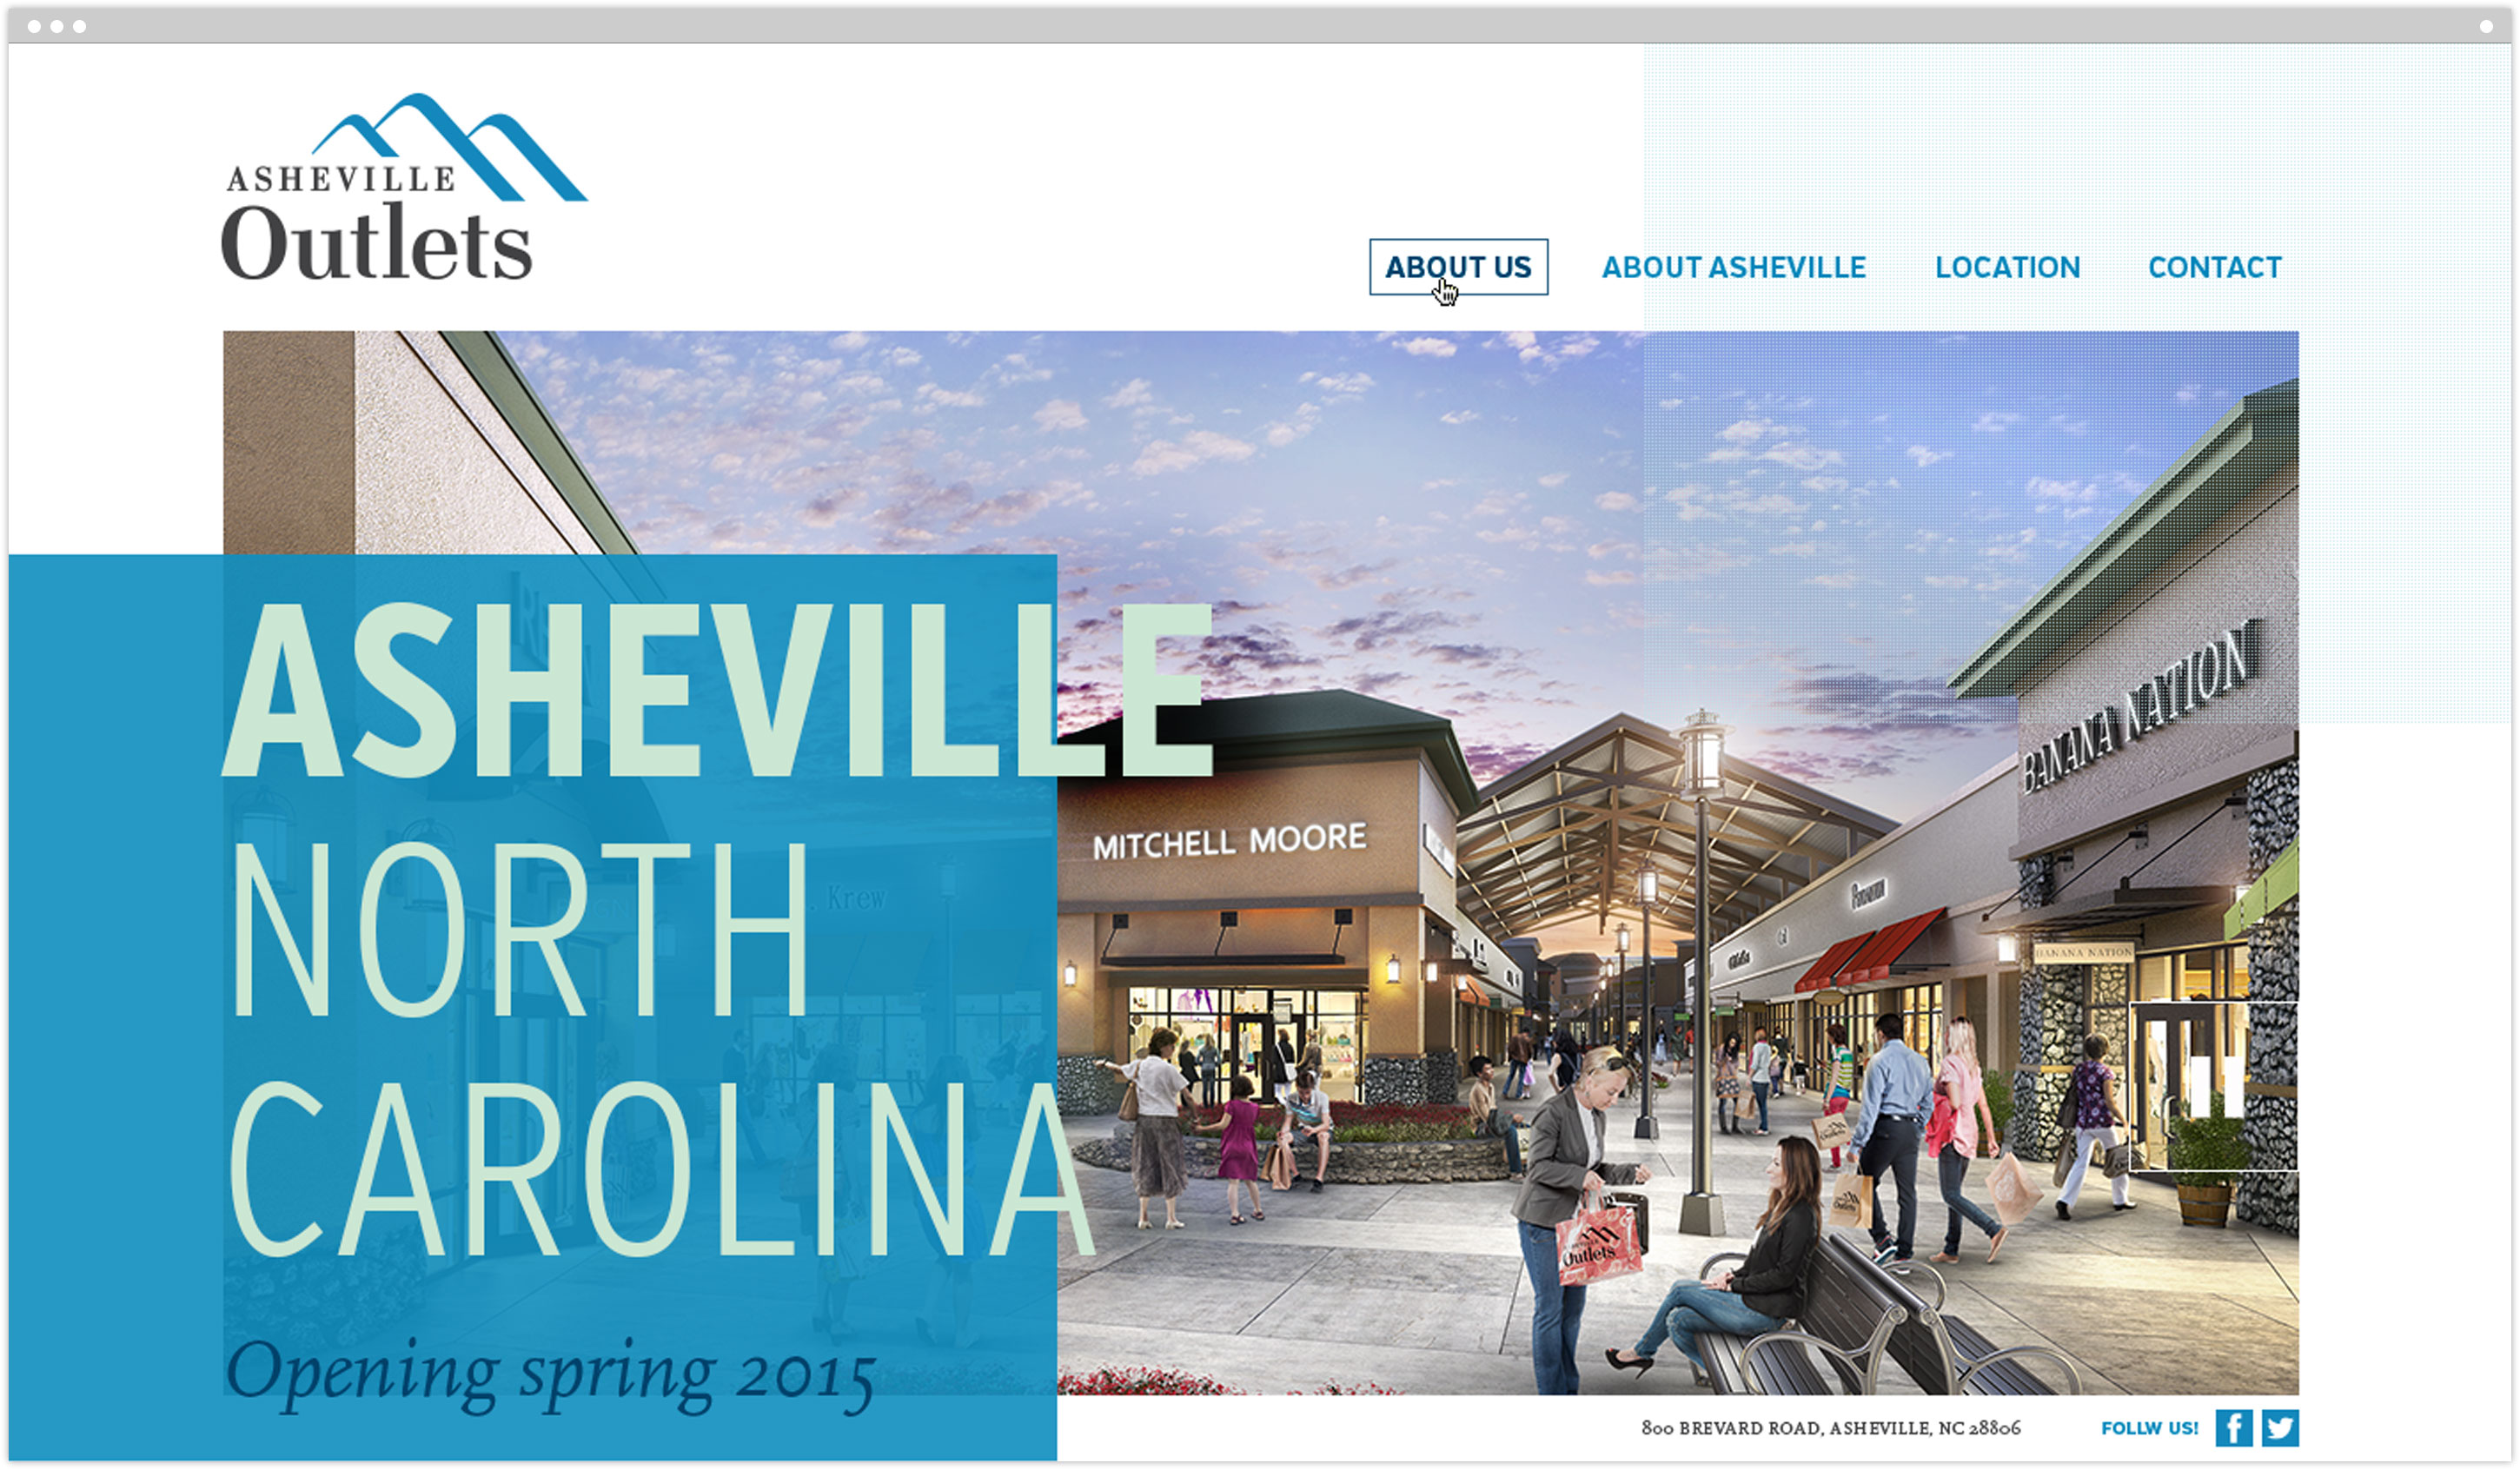 Asheville Outlets website homepage